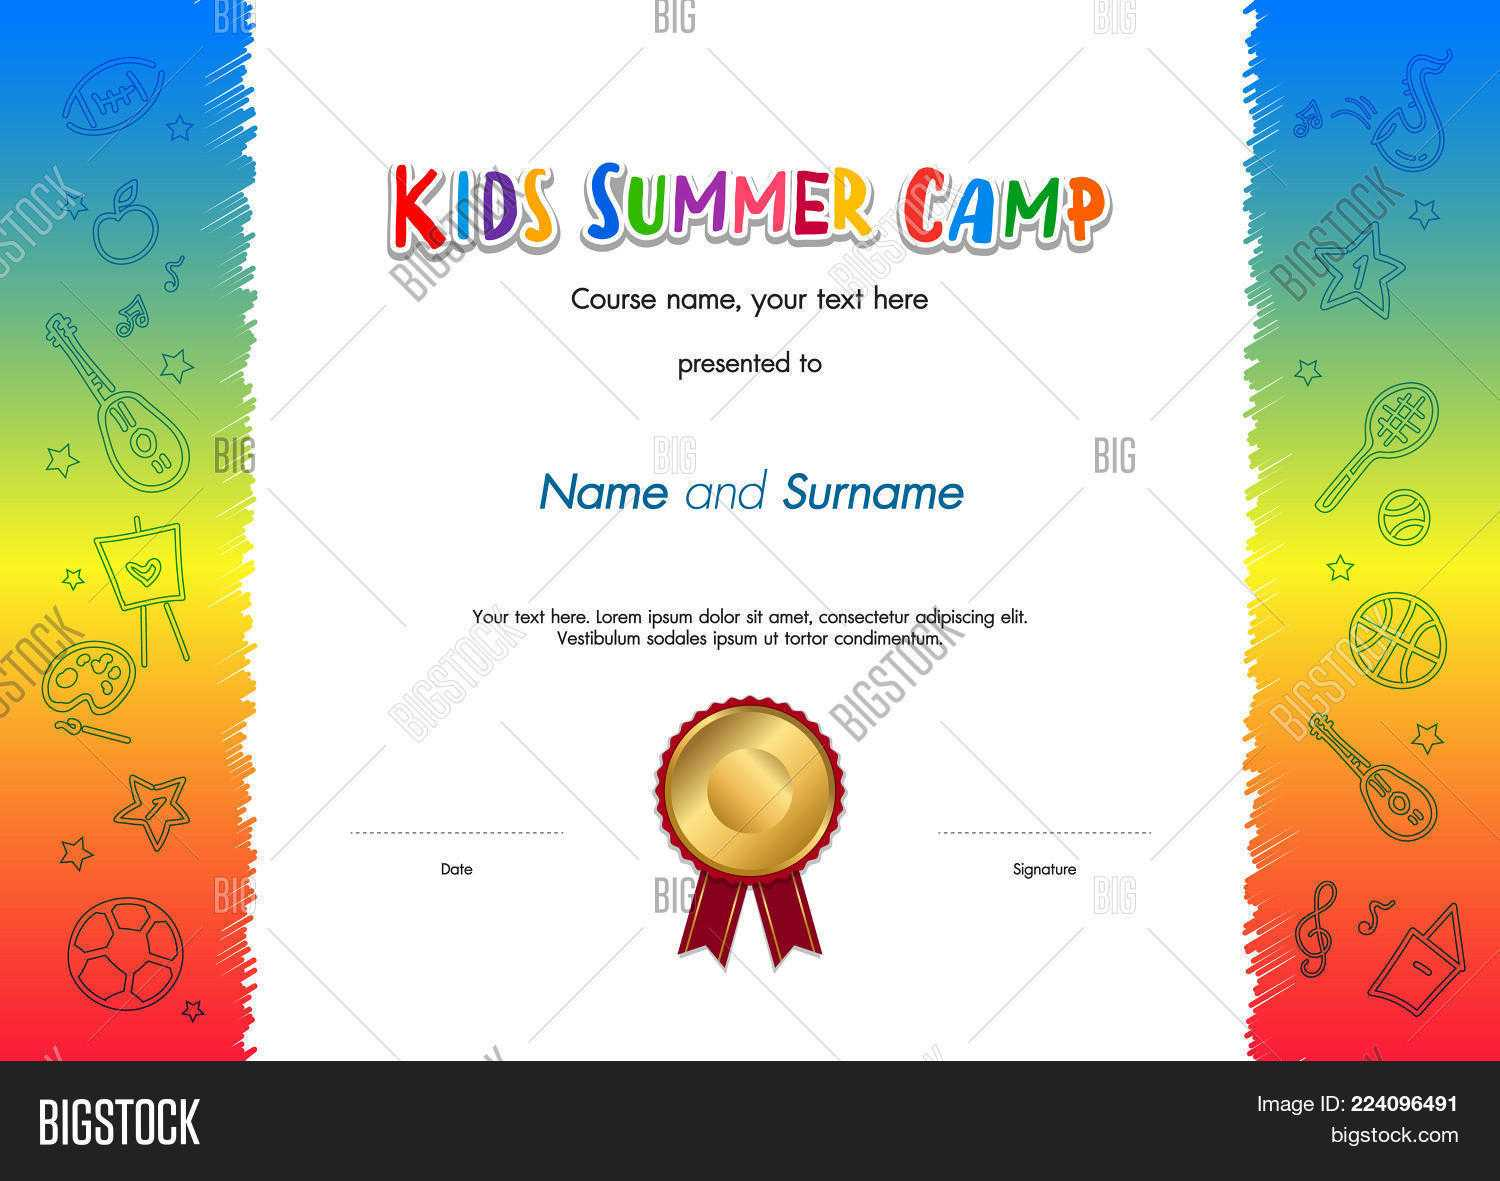 Kids Summer Camp Vector & Photo (Free Trial) | Bigstock Intended For Fun Certificate Templates